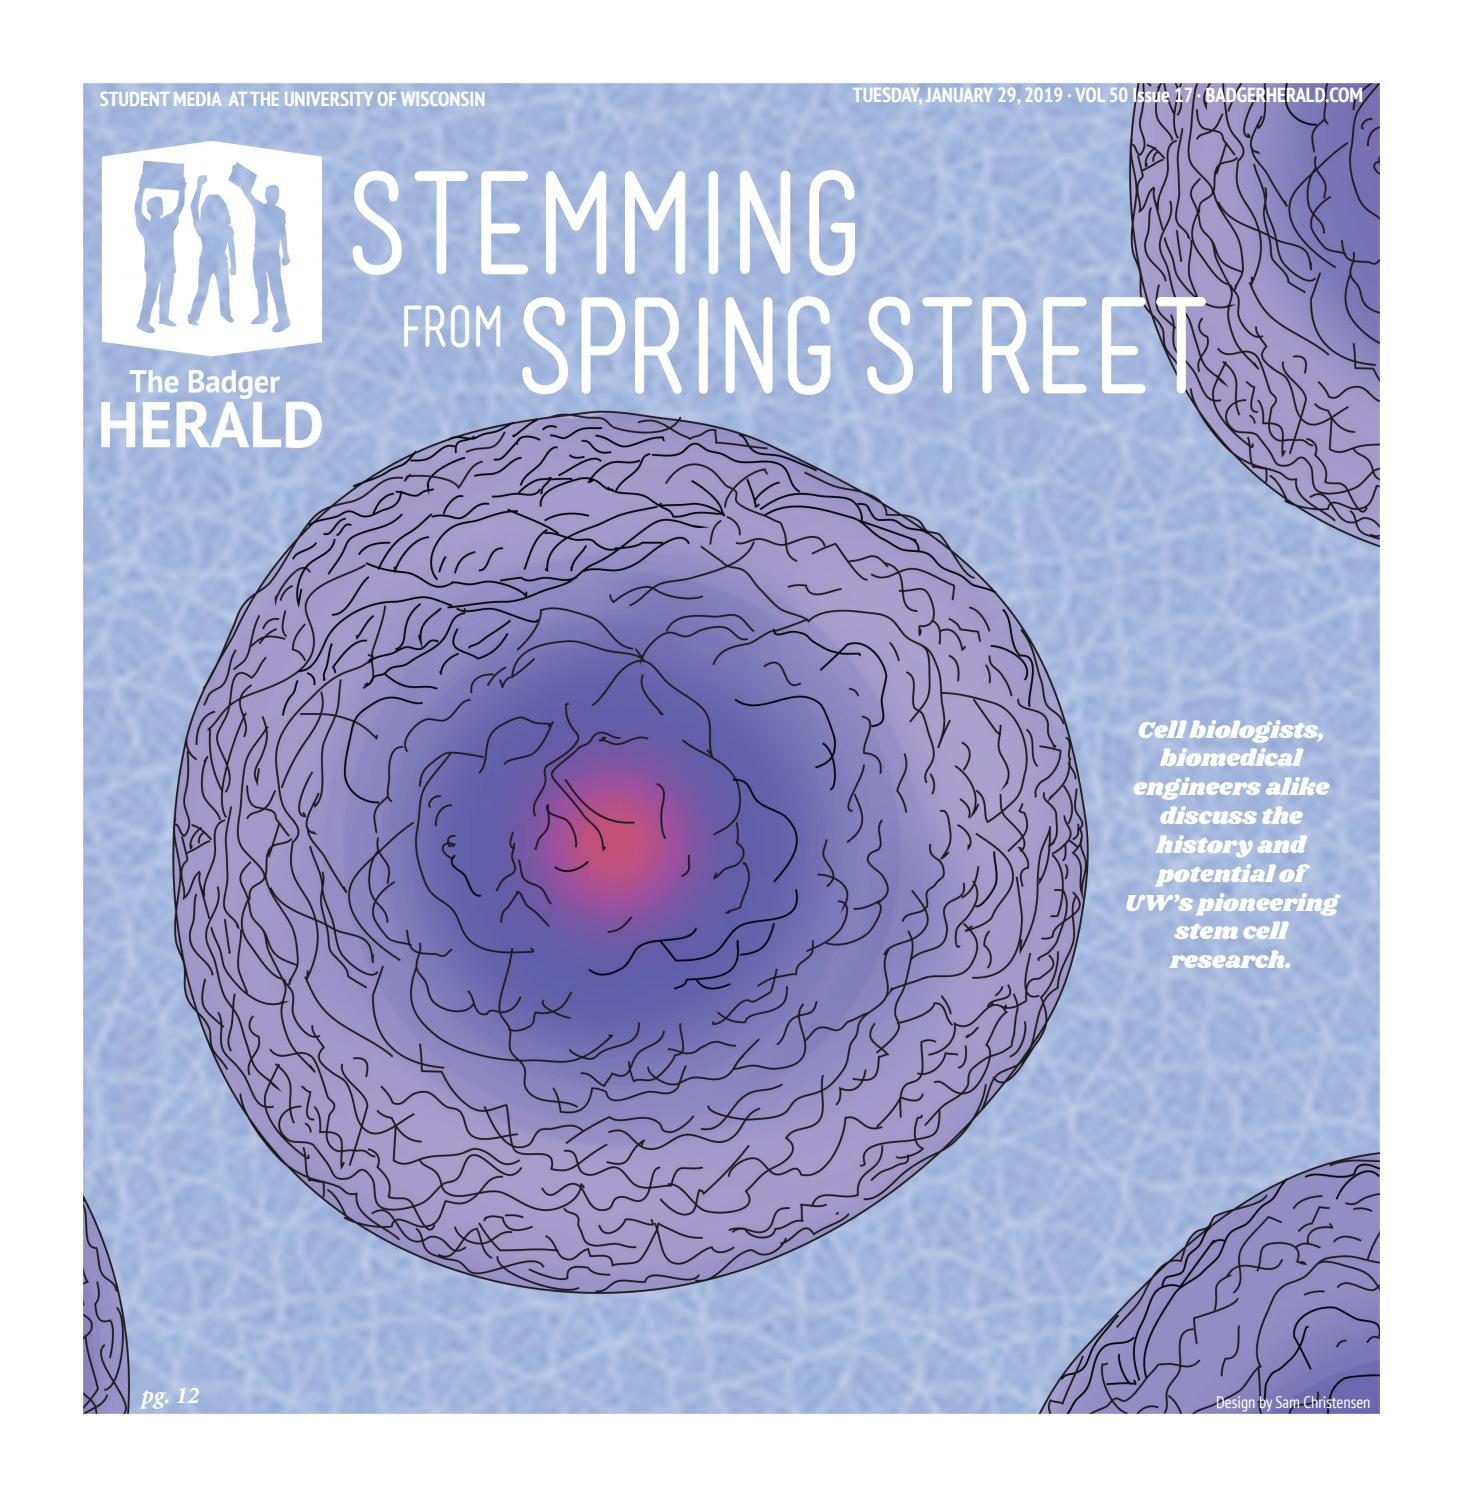 Why Blue Eyed Wisconsinites Tended To >> Stemming From Spring Street Volume 50 Issue 17 By The Badger